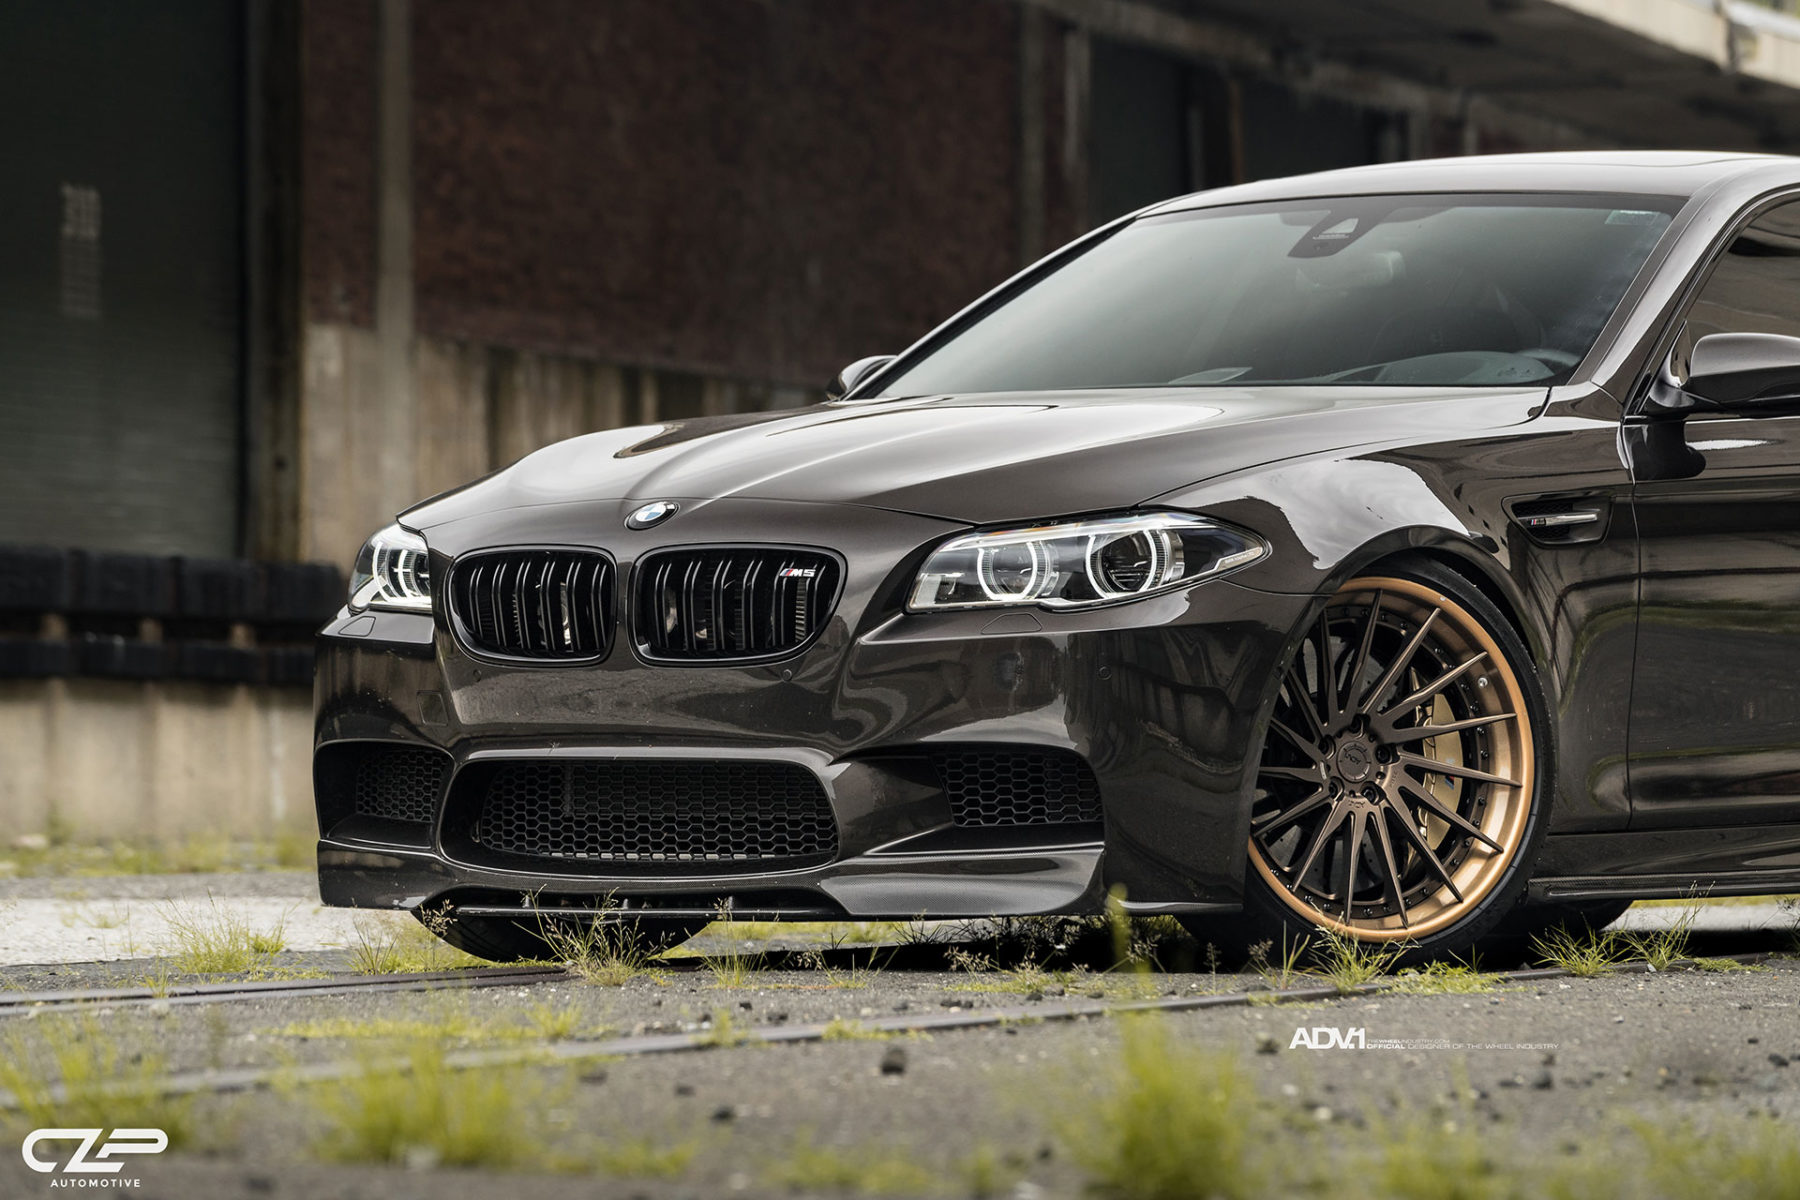 jatoba brown bmw f10 m5 adv15r track spec cs concave wheels adv 1 wheels. Black Bedroom Furniture Sets. Home Design Ideas